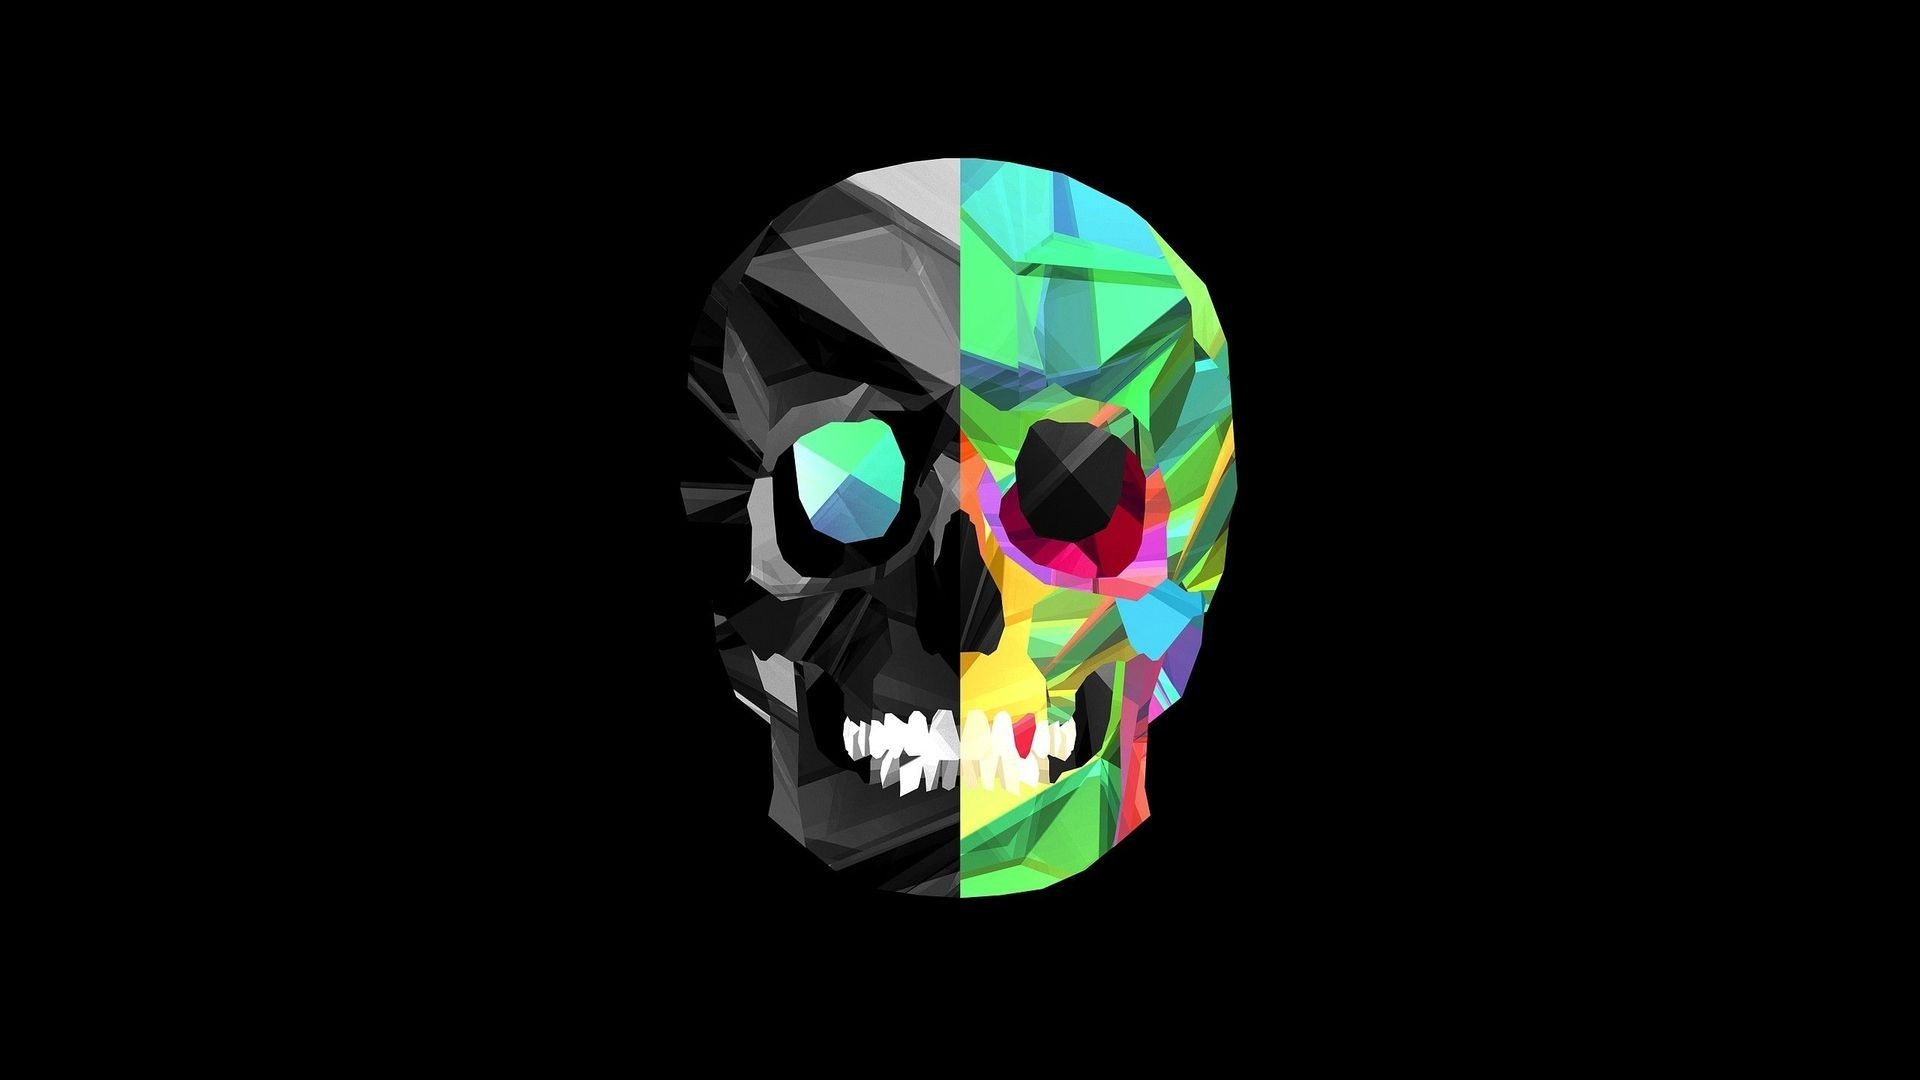 1920x1080 Skull Wallpapers High Quality Resolution Is Cool Wallpapers